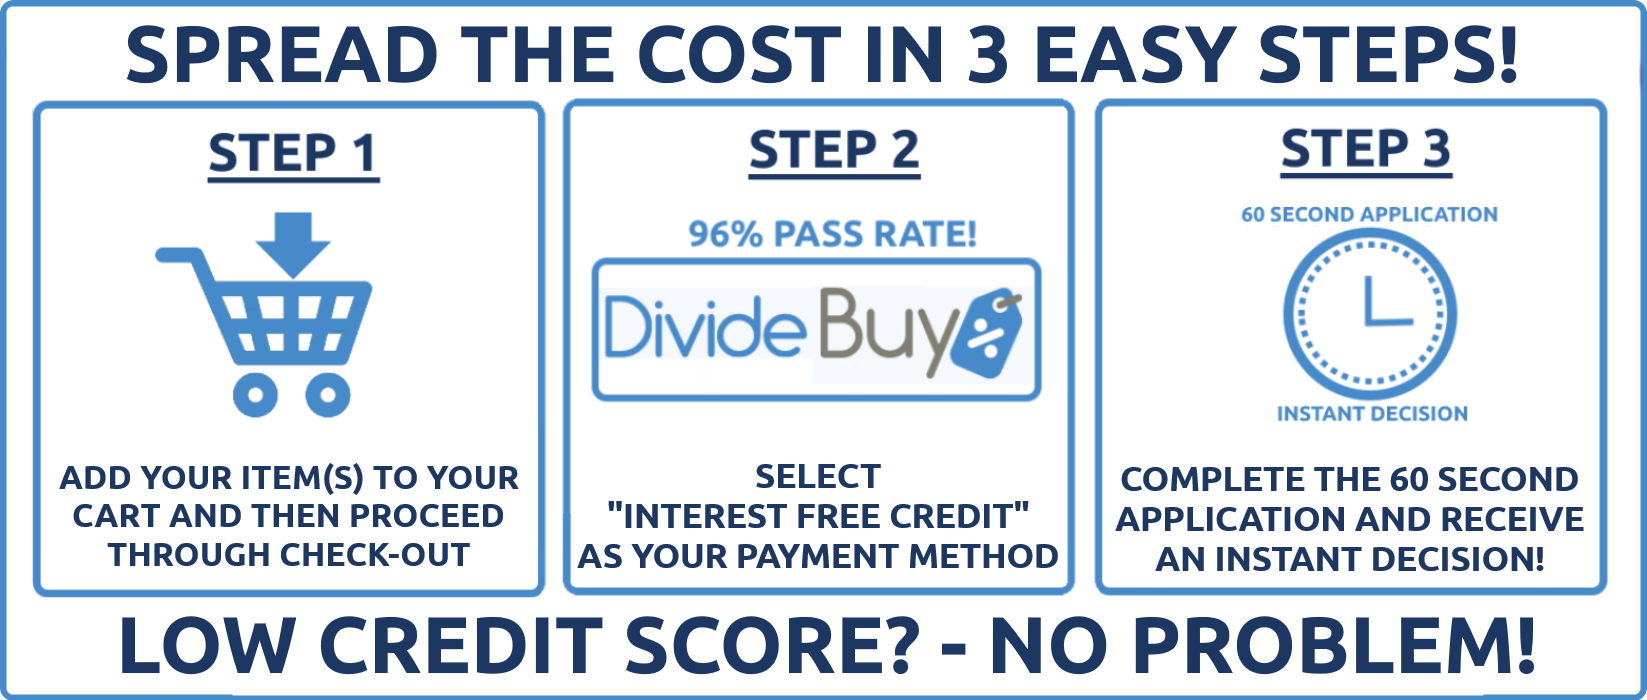 Interest Free Credit Information